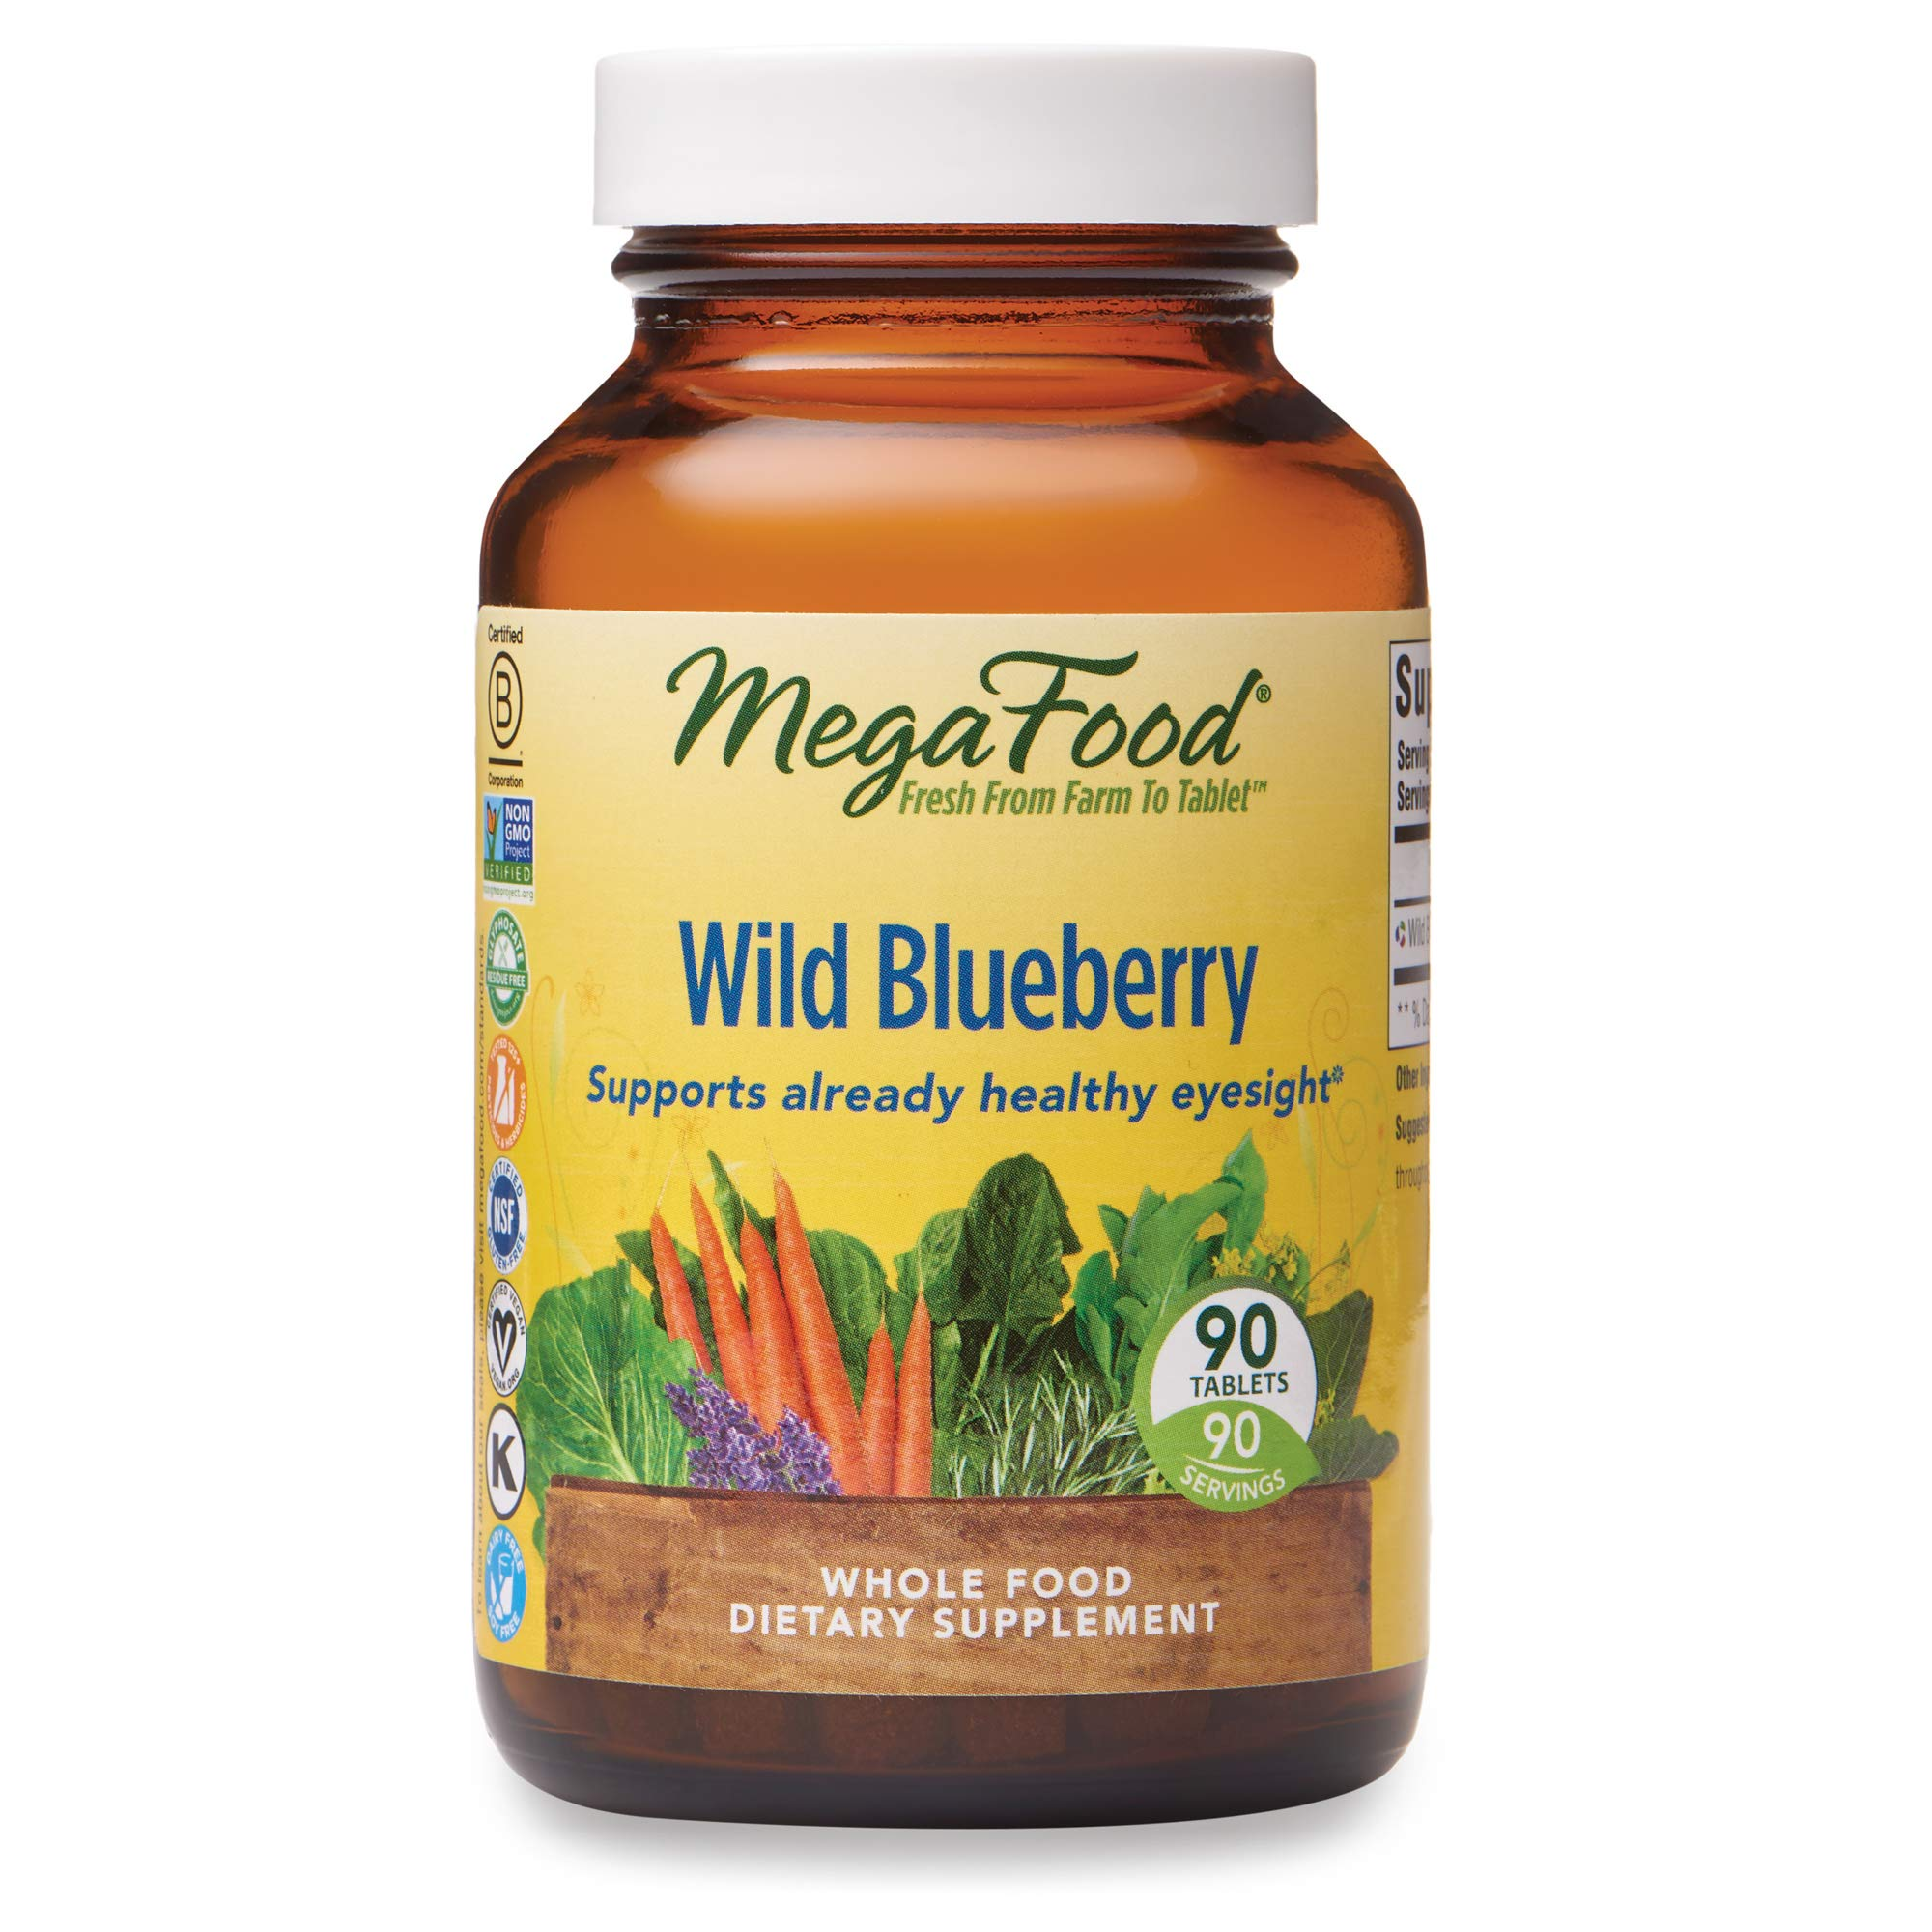 MegaFood, Wild Blueberry, Supports Healthy Eyesight, Chewable Whole Food Supplement, Vegan, 90 Tablets (90 Servings) (FFP)